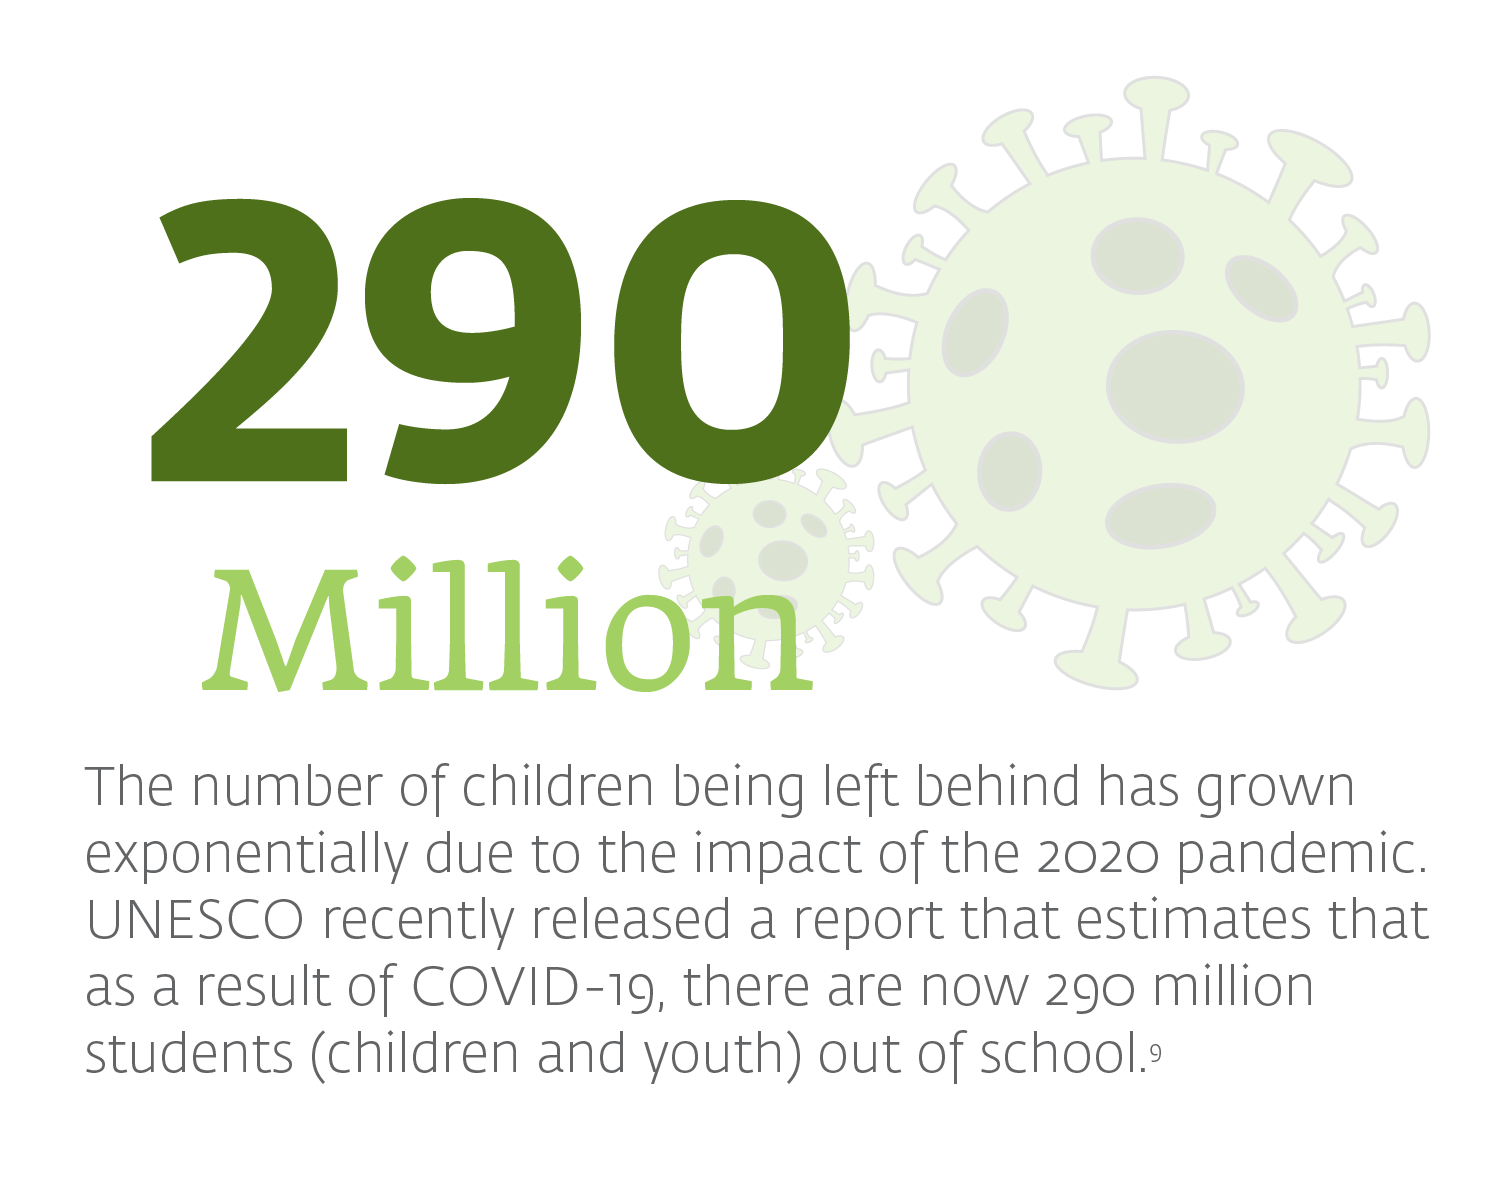 as a result of COVID-19, there are now 290 million students (children and youth) out of school